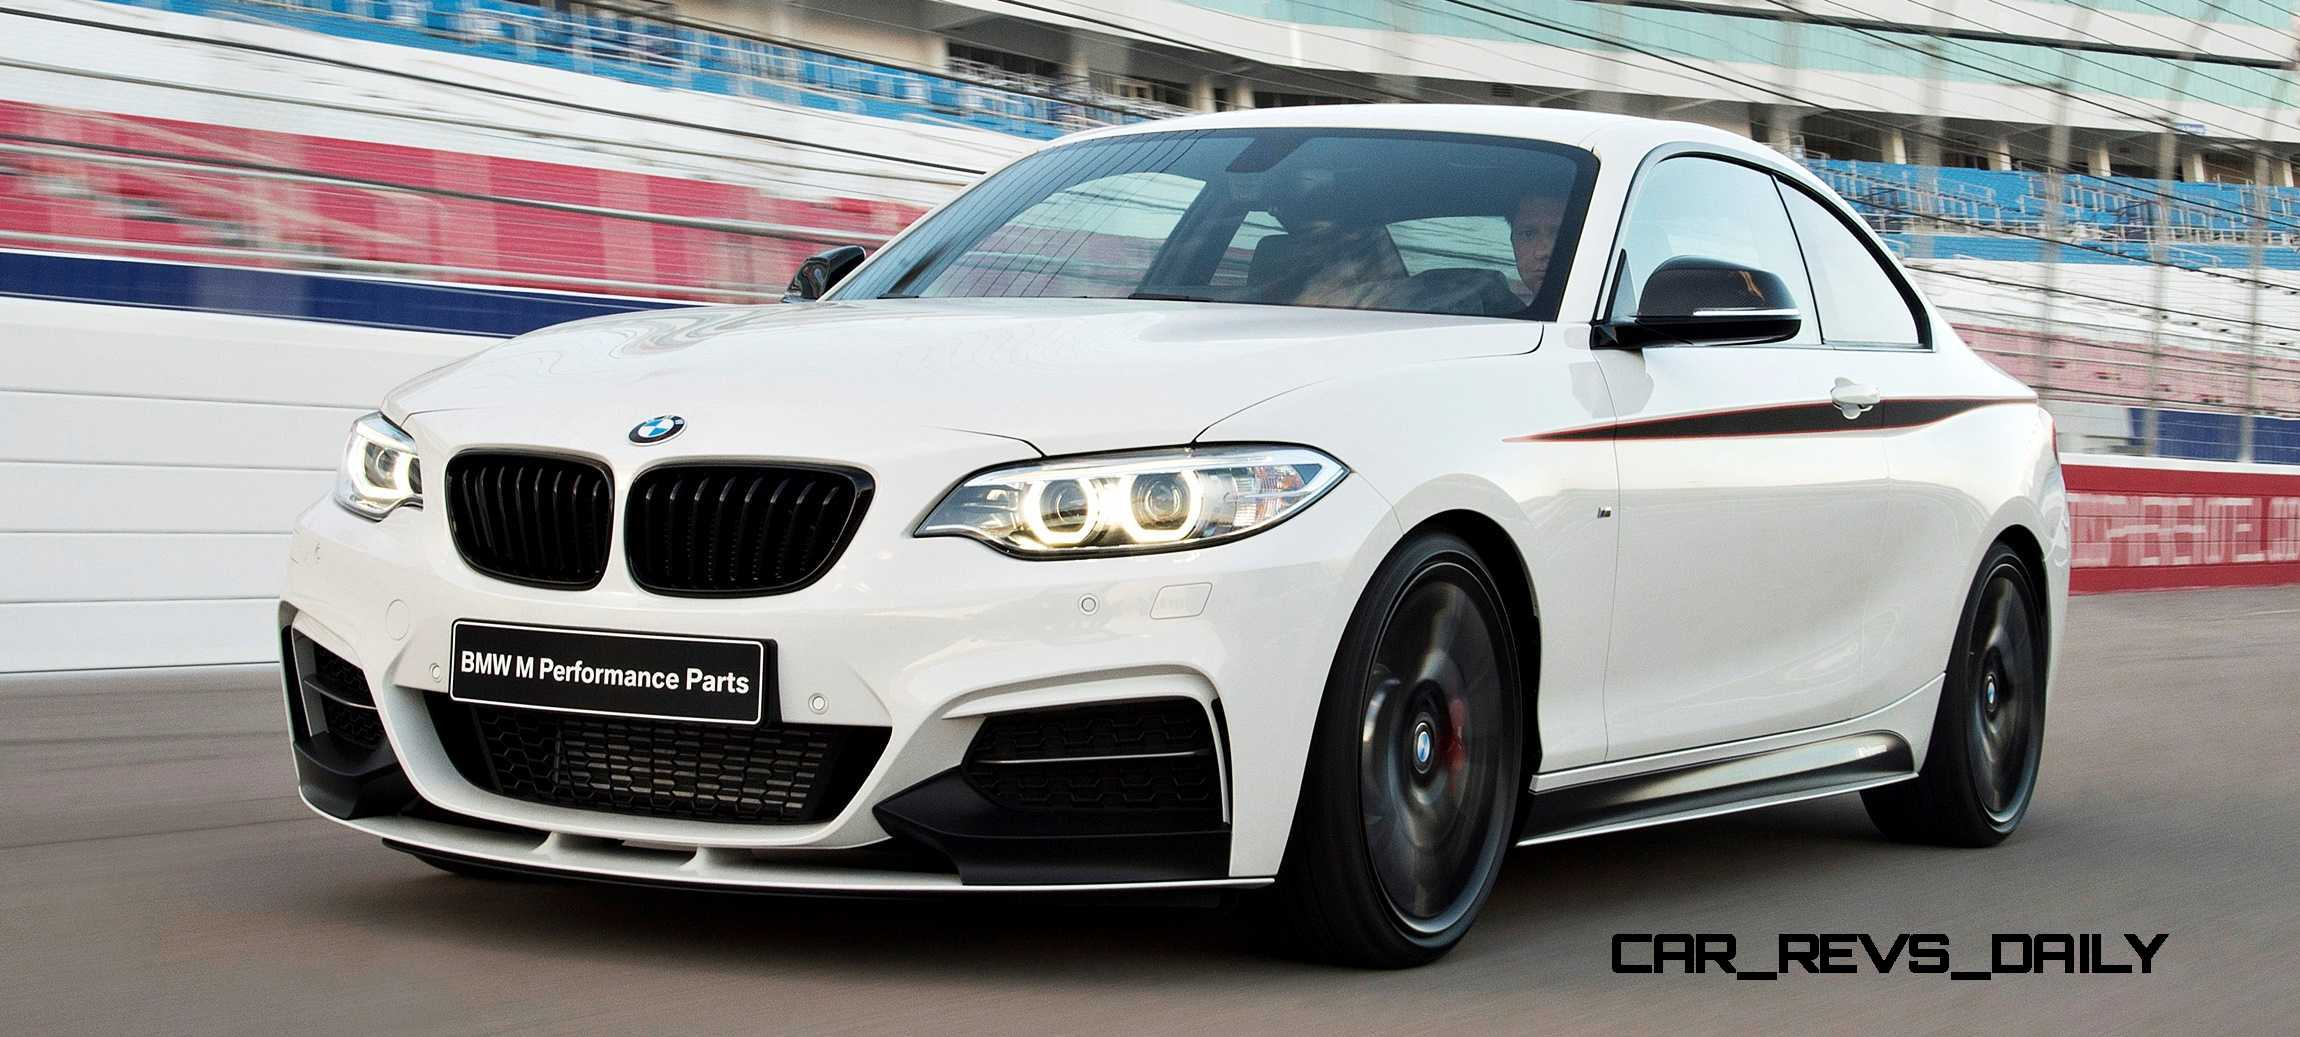 Gift Ideas - BMW 2 Series M Performance Parts Catalog Highlights 20